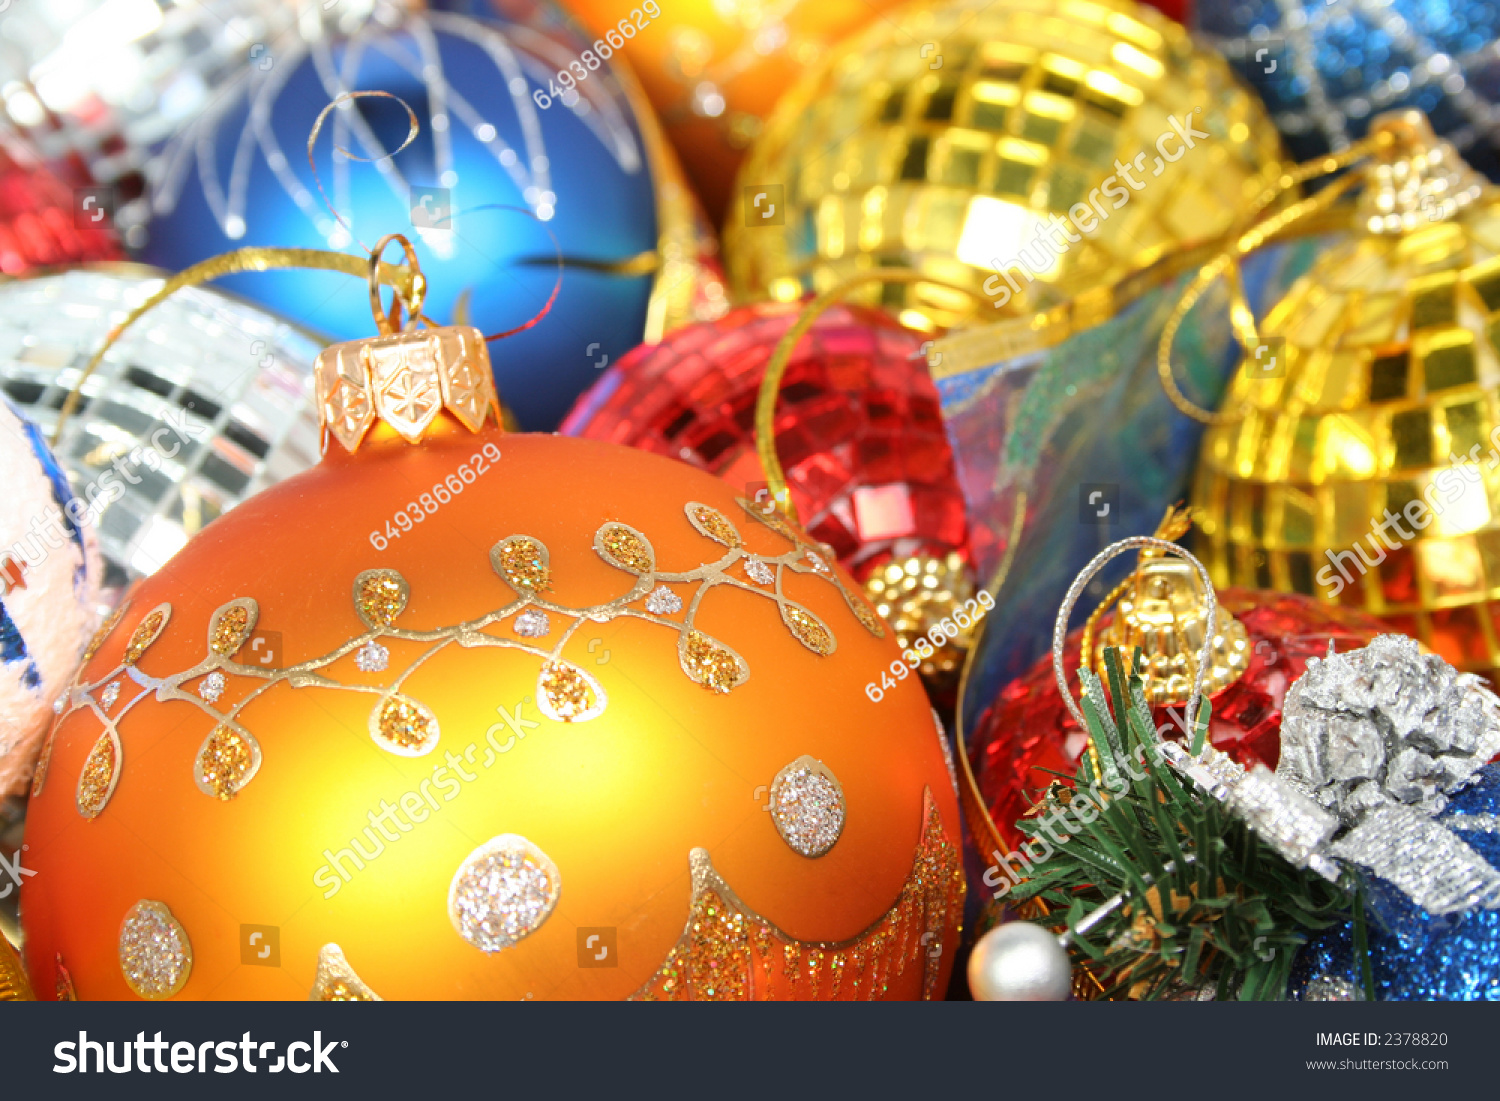 Christmas Ornaments Of Different Color In The Form Of Glass And